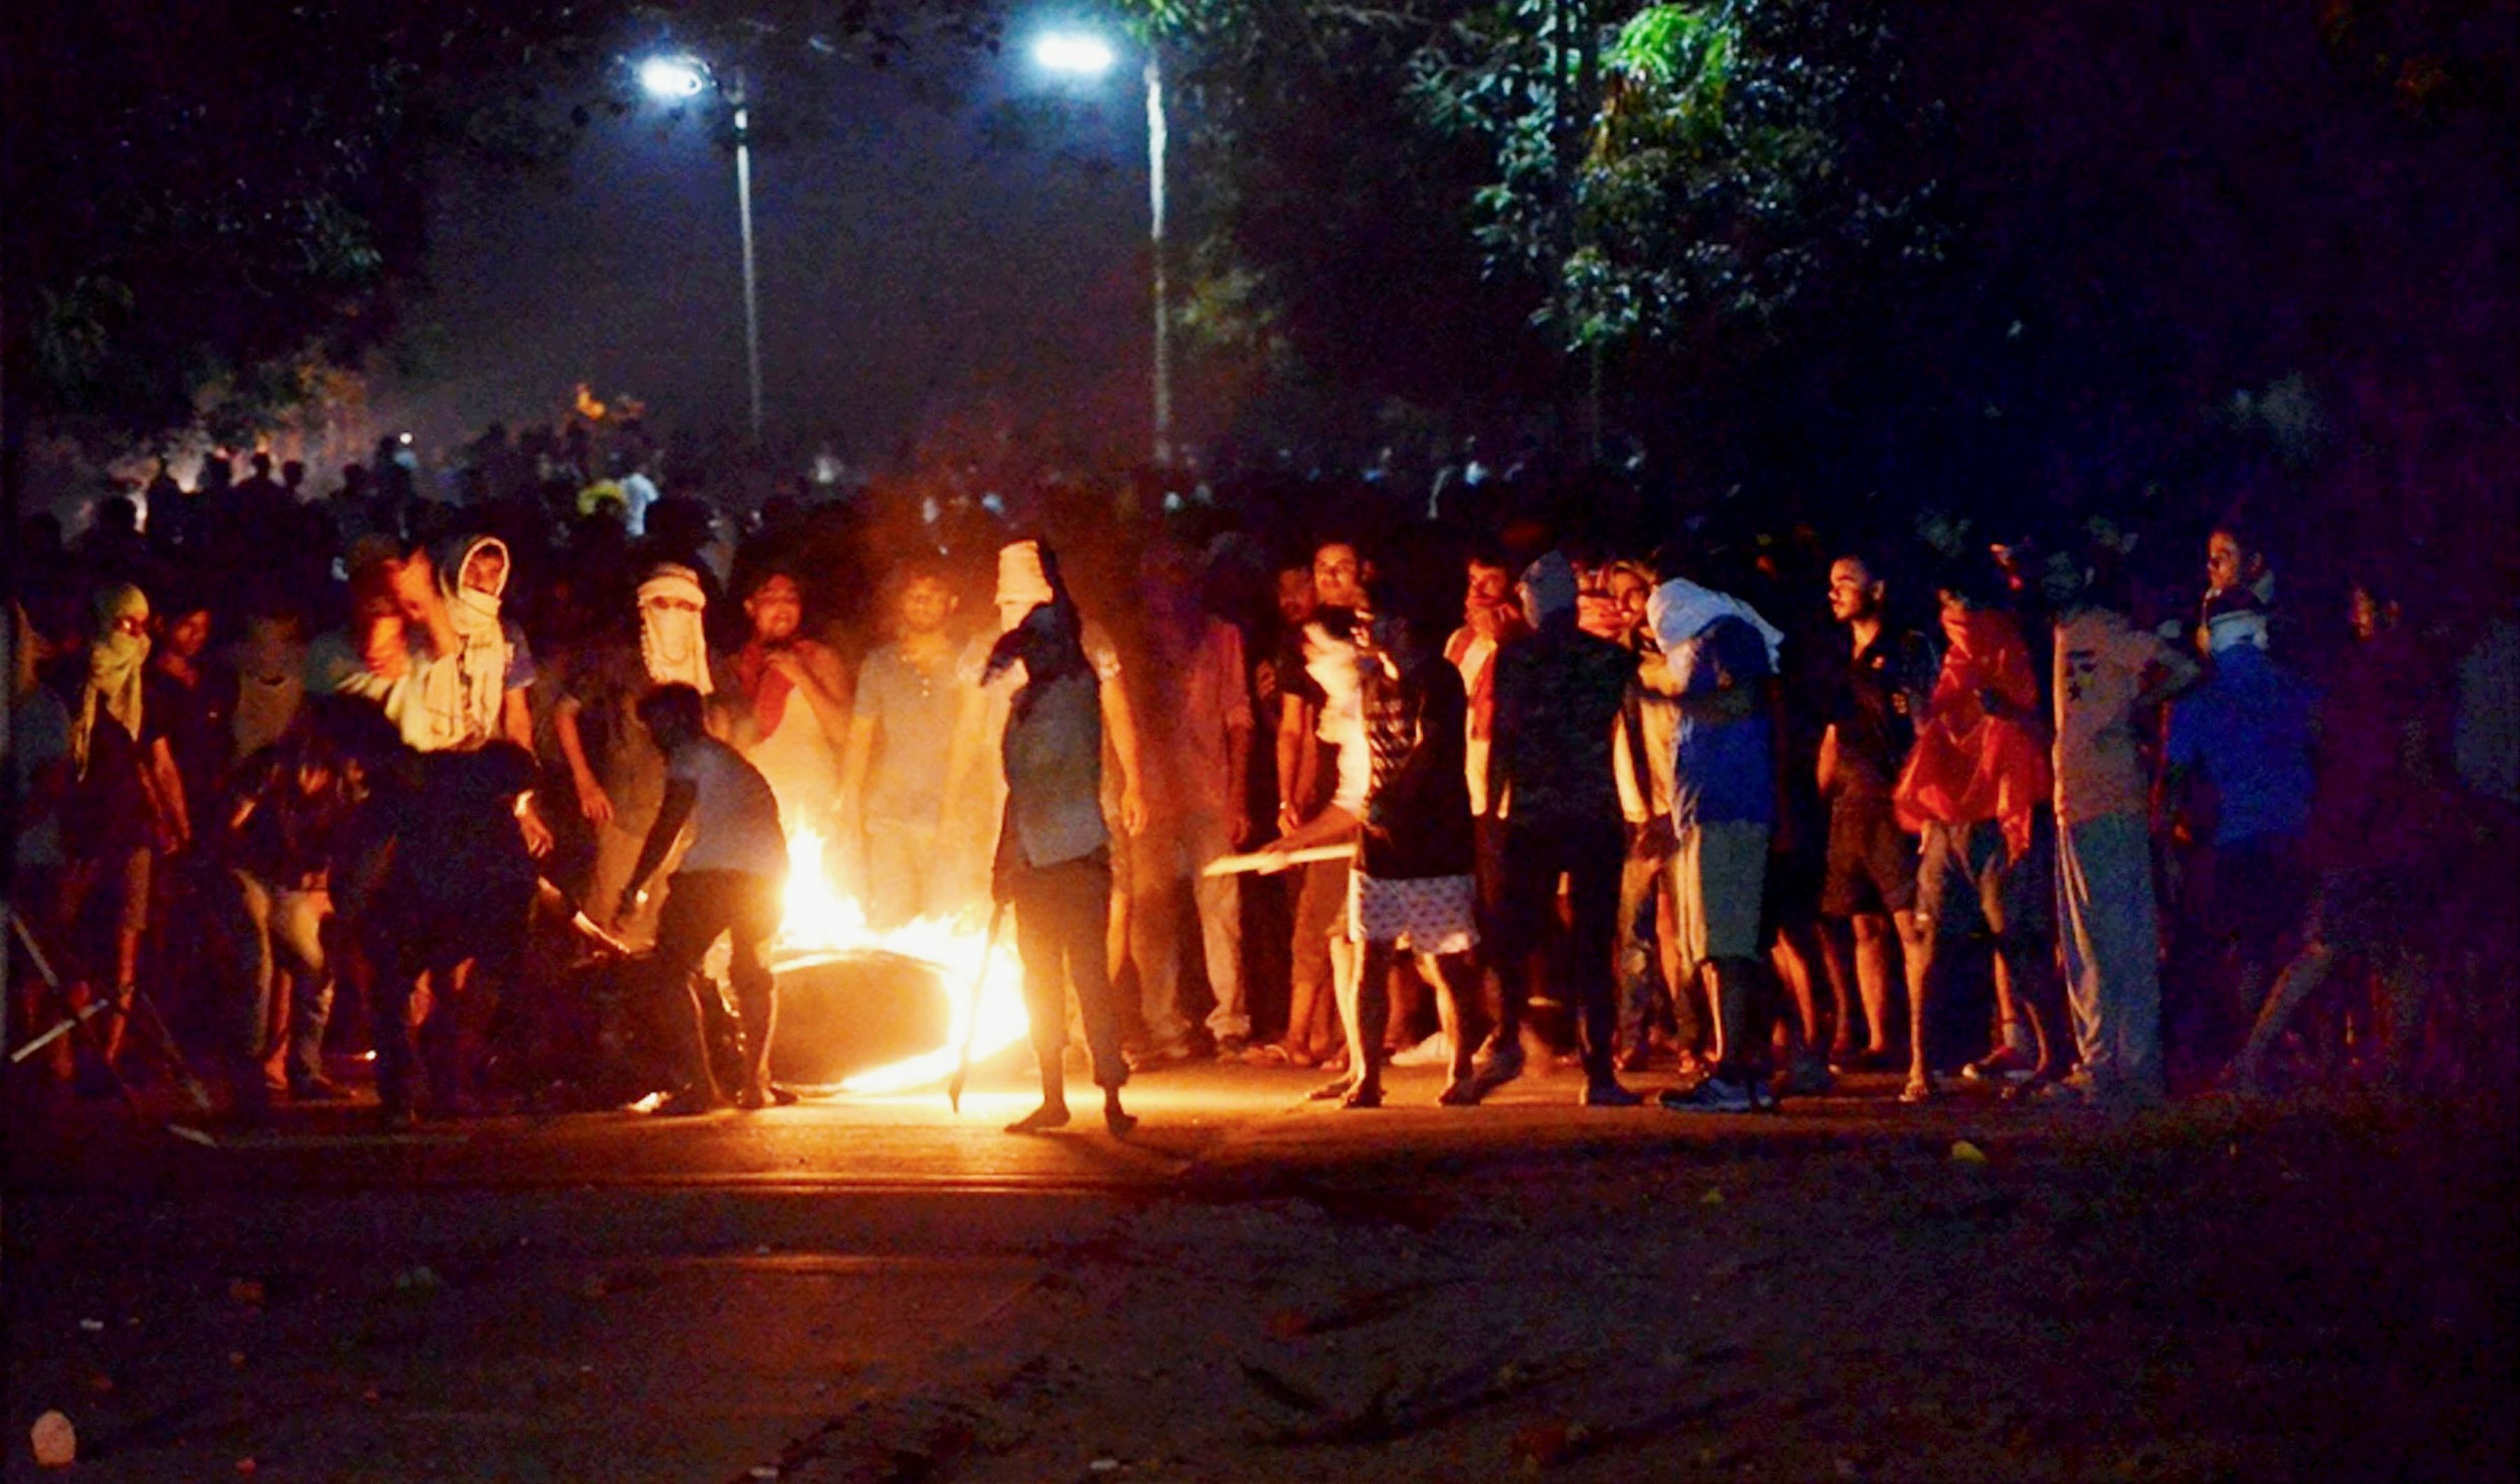 Varanasi: A bike in flames during clashes between the students and police at Banaras Hindu University in Varanasi, late Saturday night. Female students at the prestigious University were protesting against the administration's alleged victim-shaming after one of them reported an incident of molestation on Thursday. PTI Photo (PTI9_24_2017_000080A)